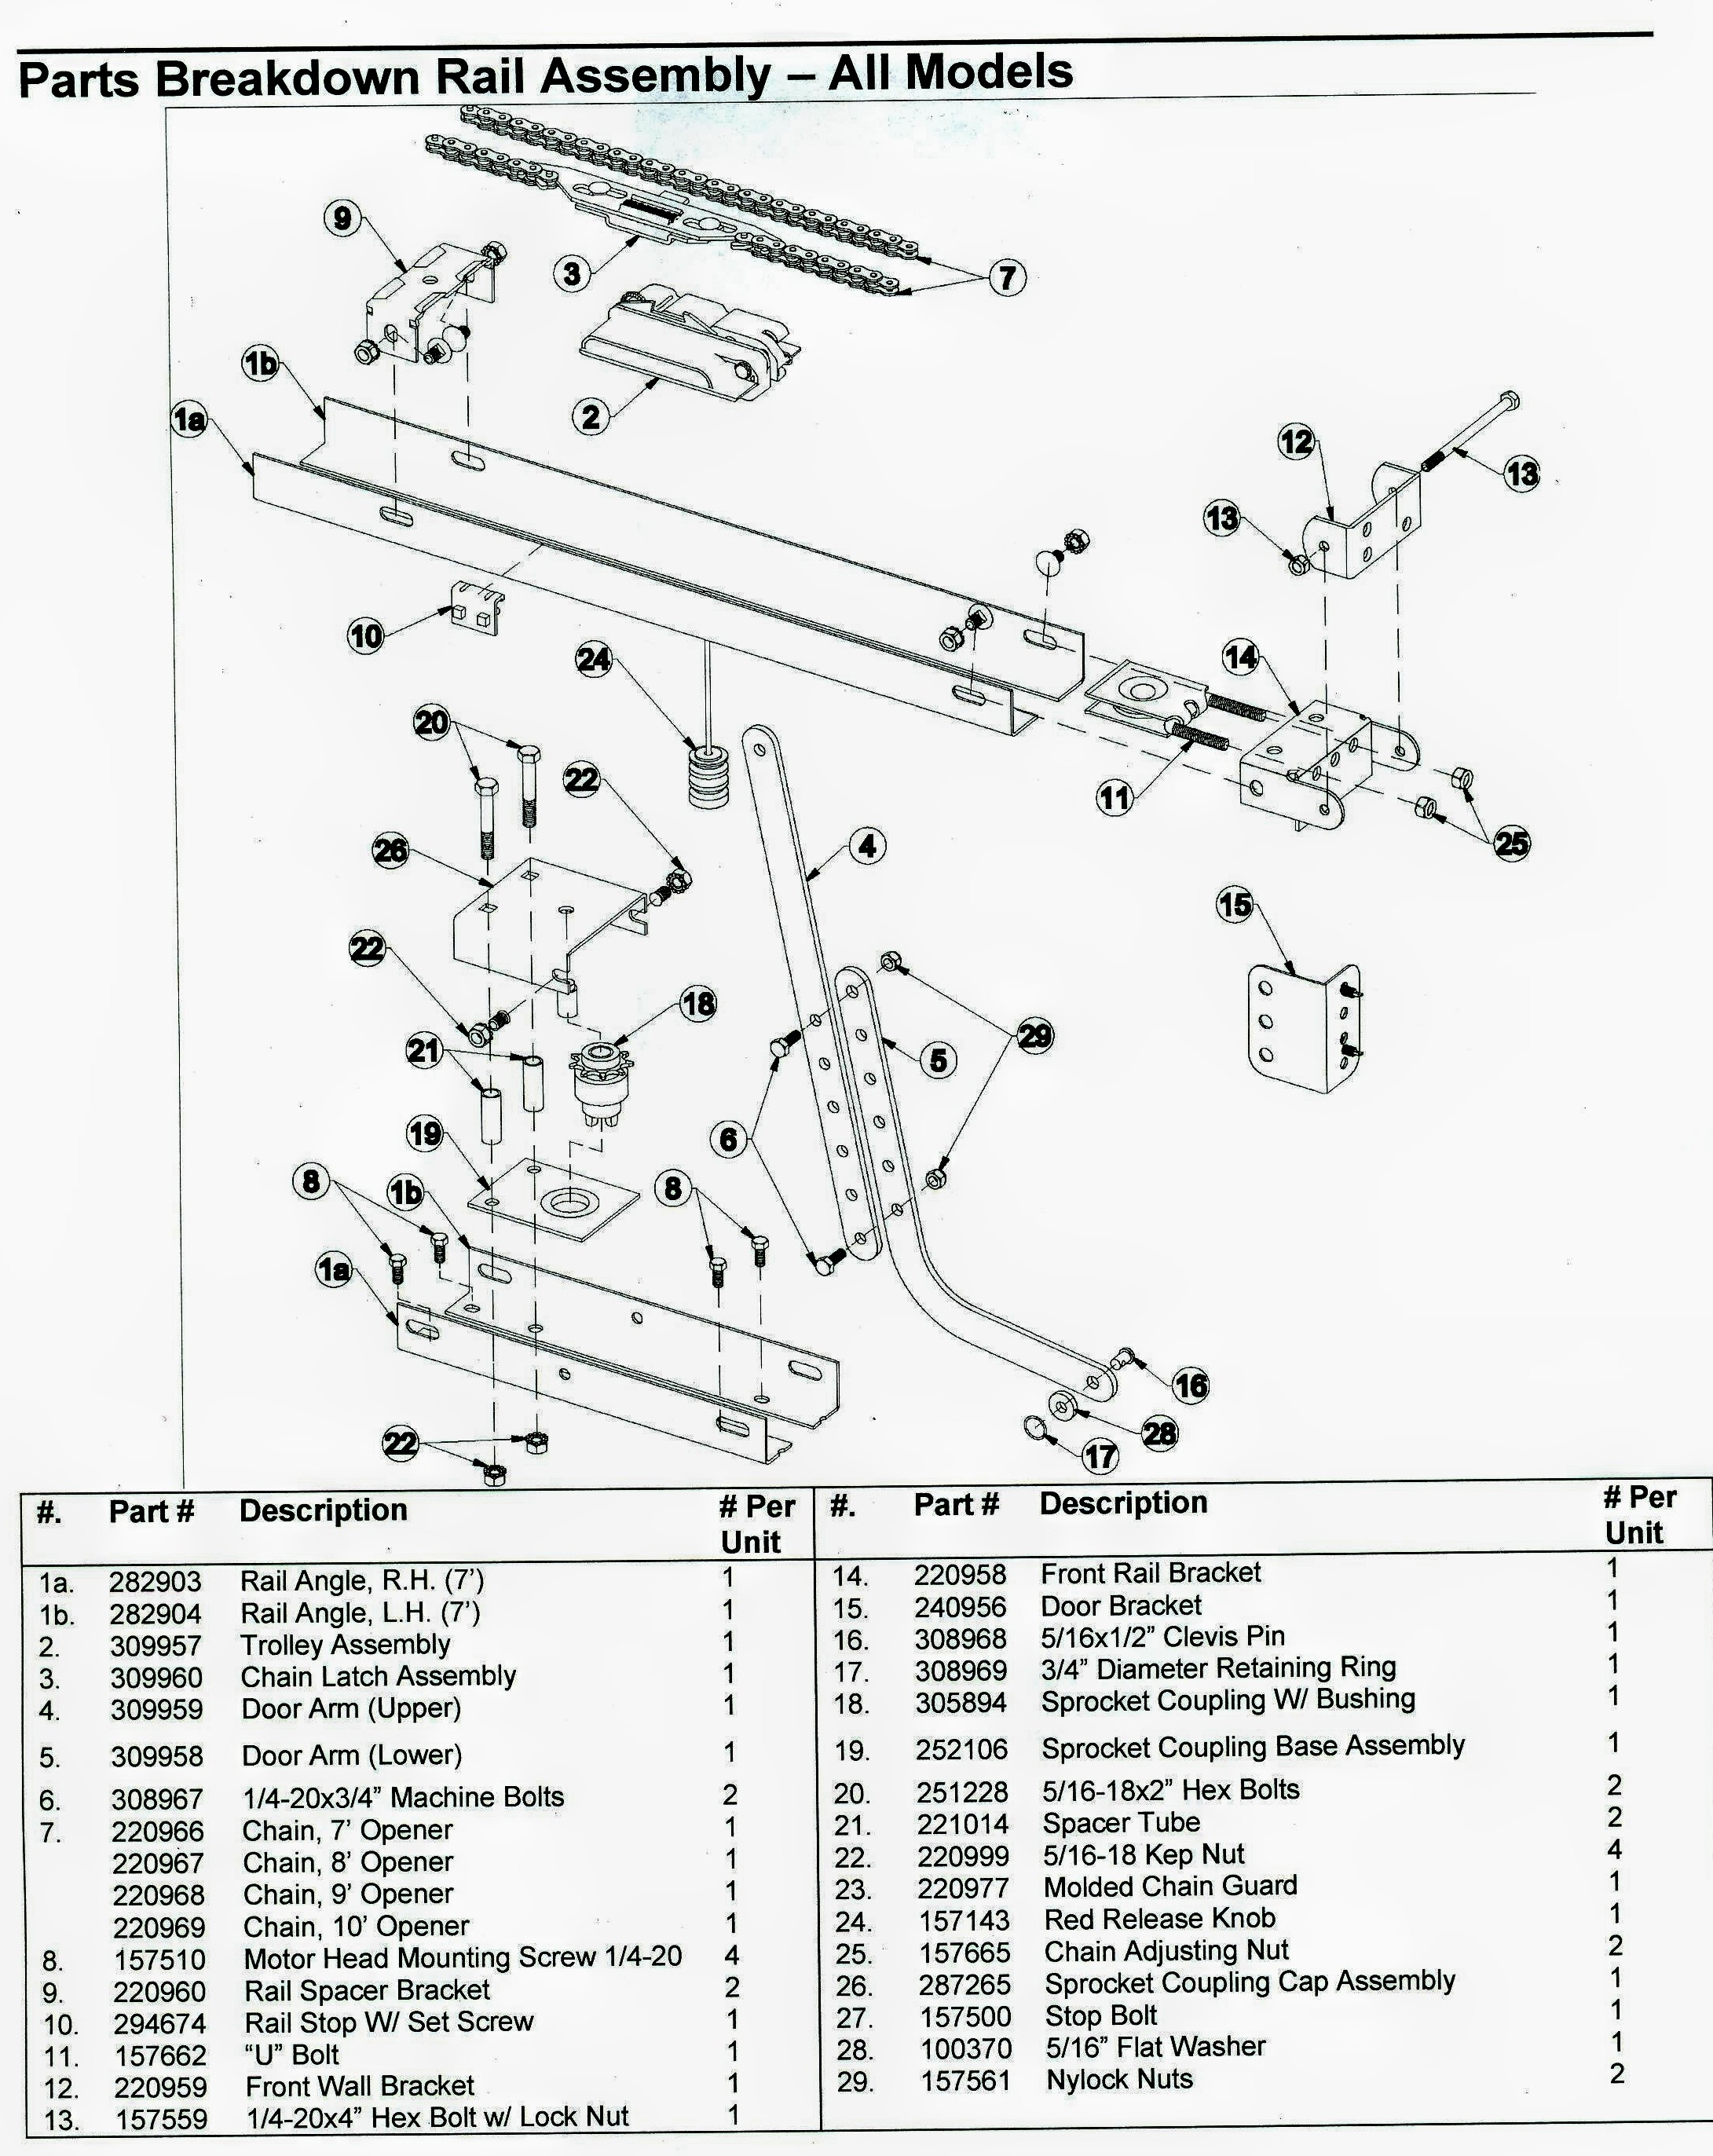 wiring diagram for liftmaster garage door opener wiring diagram throughout liftmaster garage door opener parts diagram liftmaster garage door opener parts diagram automotive parts wiring diagram for garage door opener at letsshop.co